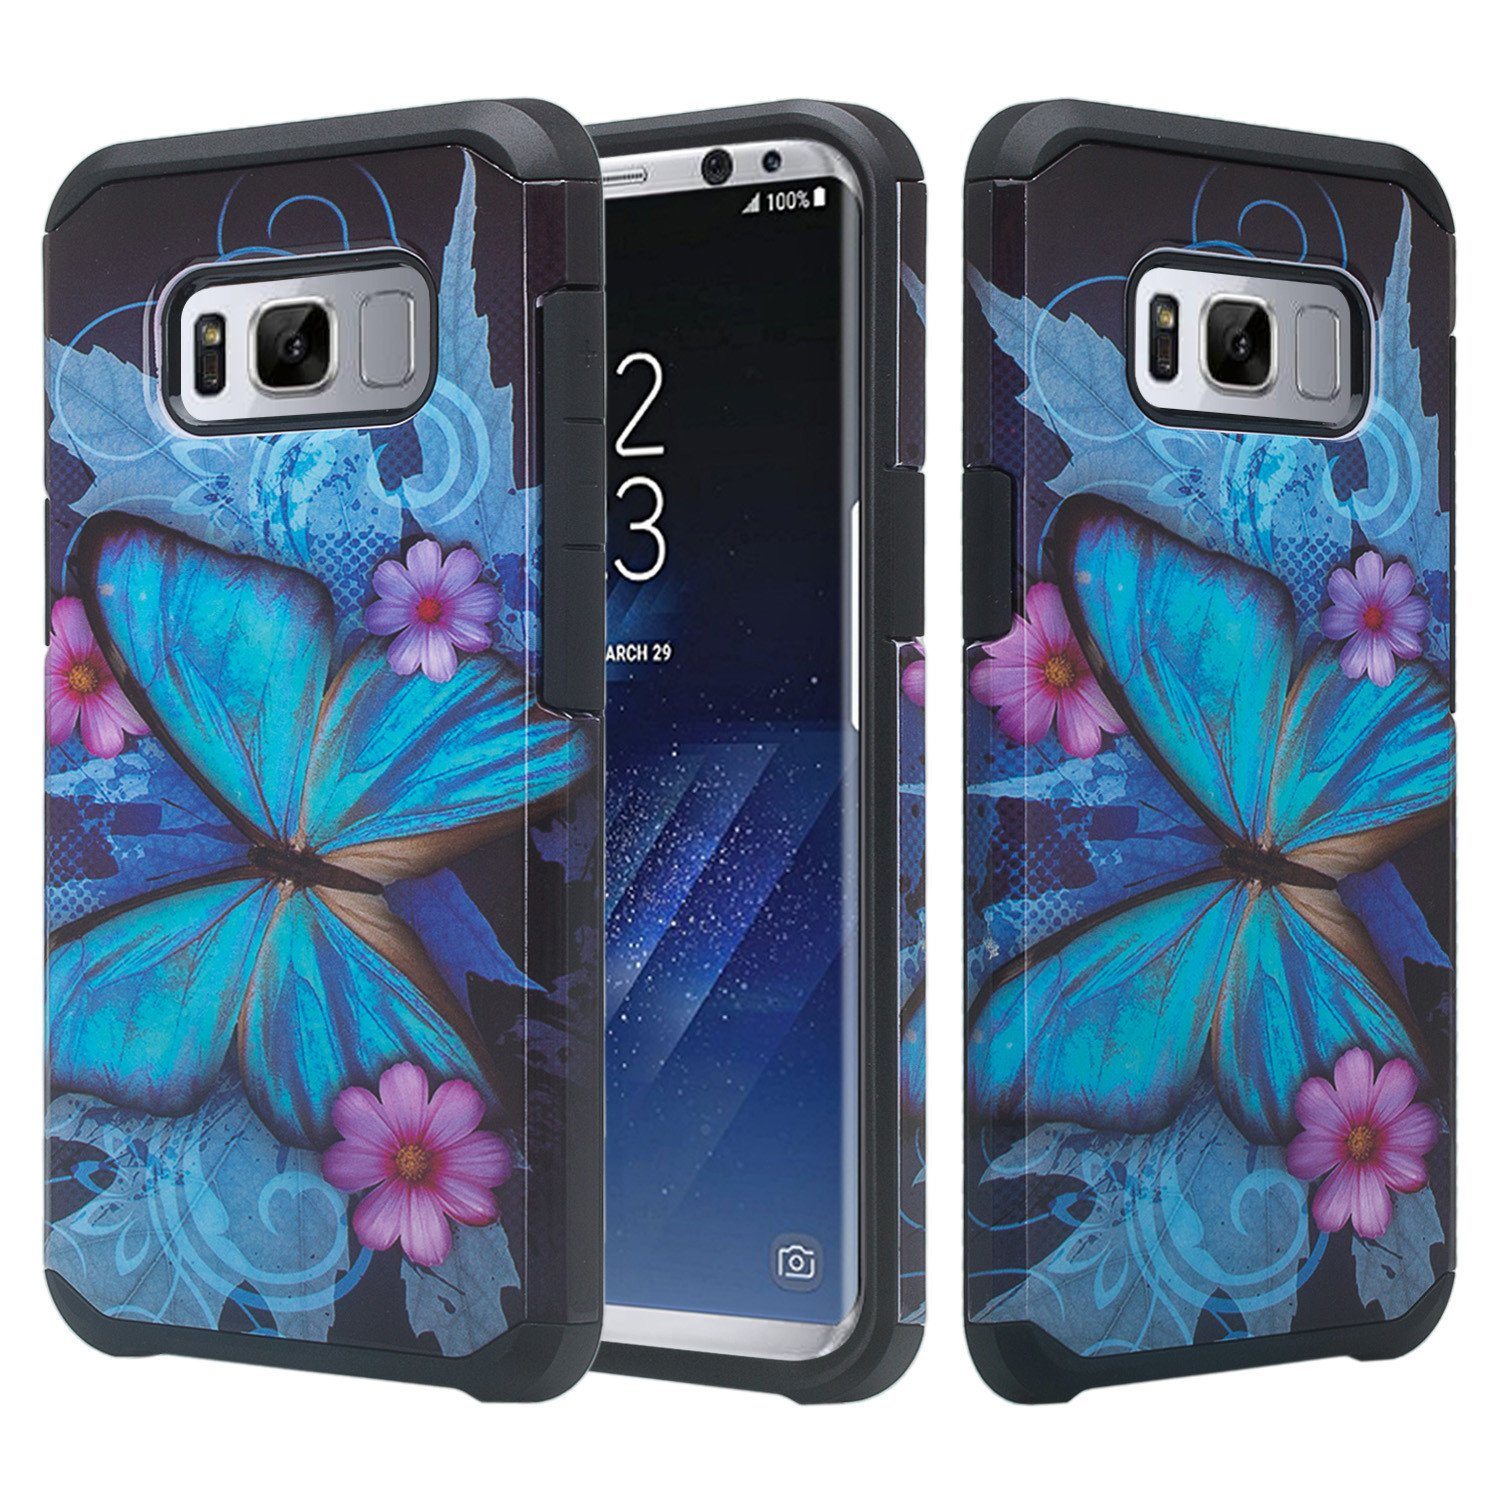 Samsung Galaxy S8 Plus Case, Slim Hybrid Dual Layer[Shock Resistant] Protective Case Cover - Blue Butterfly